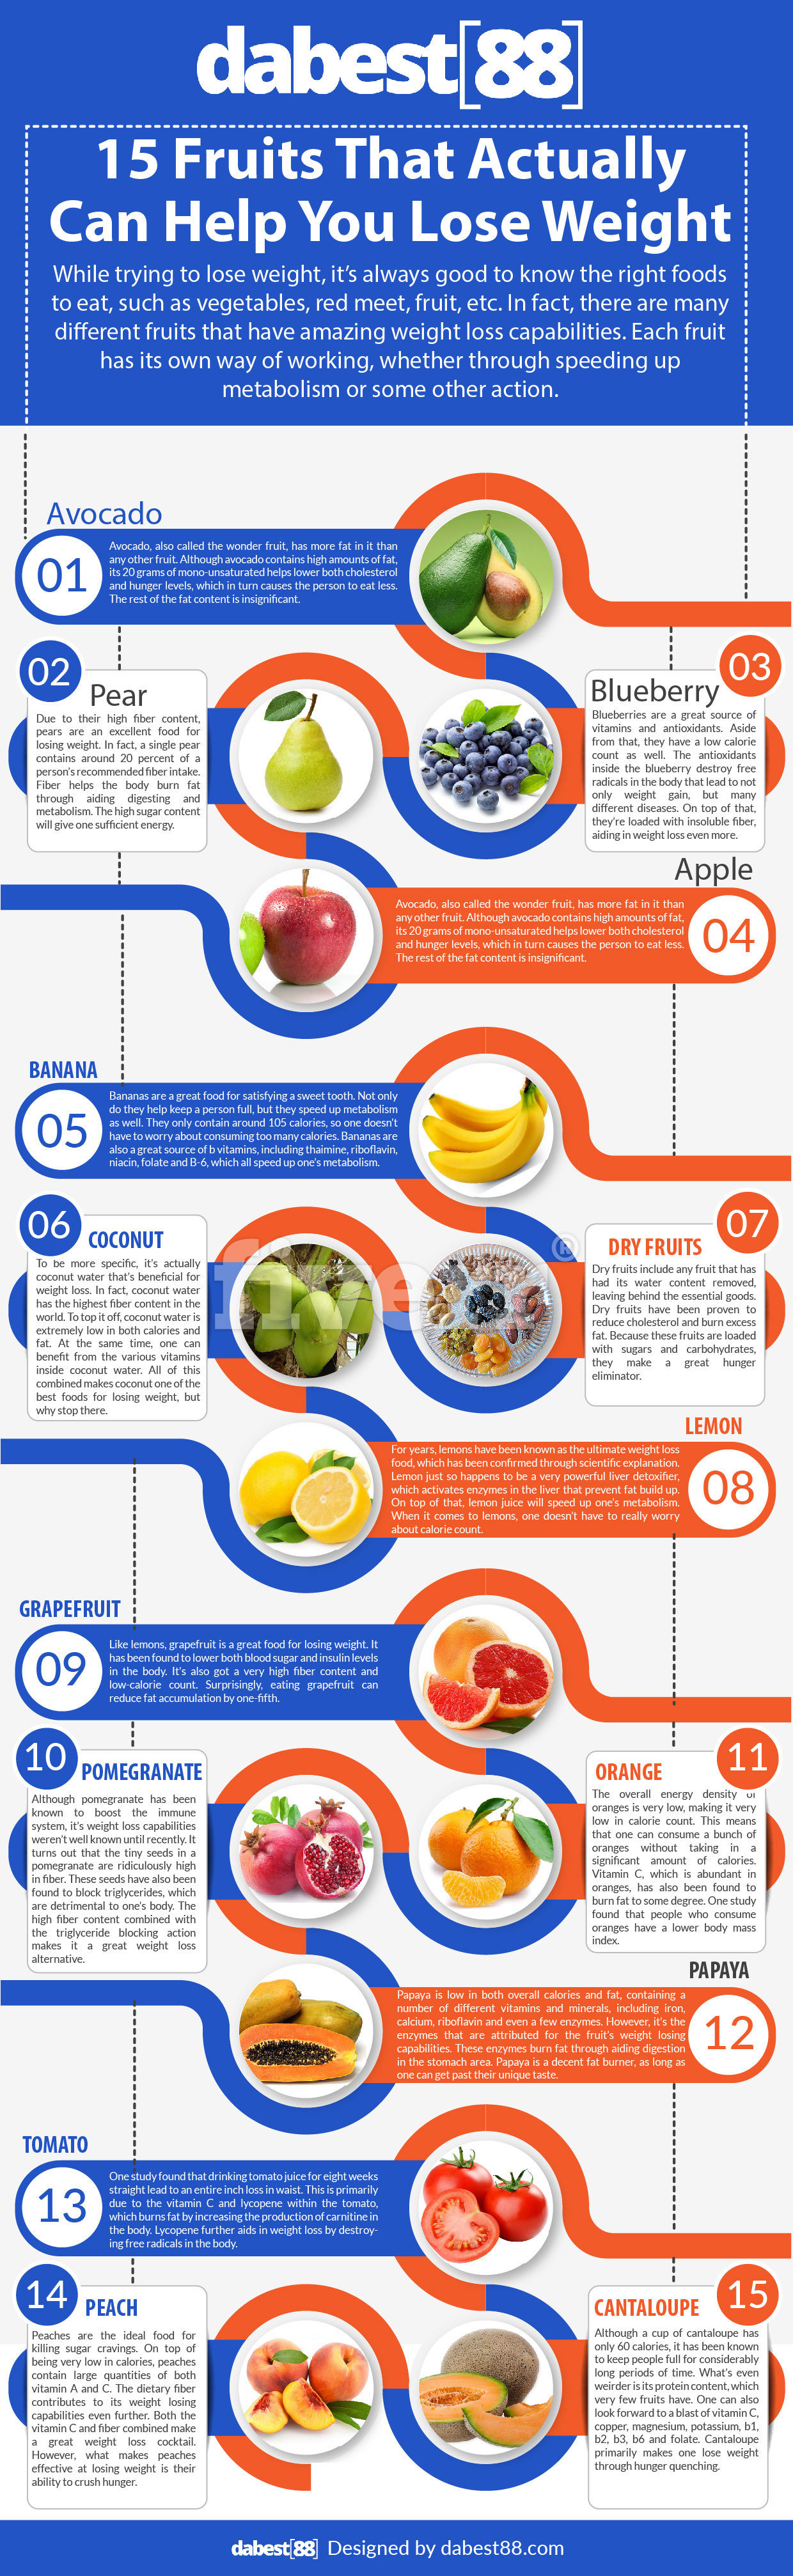 Pin On 15 Fruits That Actually Can Help You Lose Weight